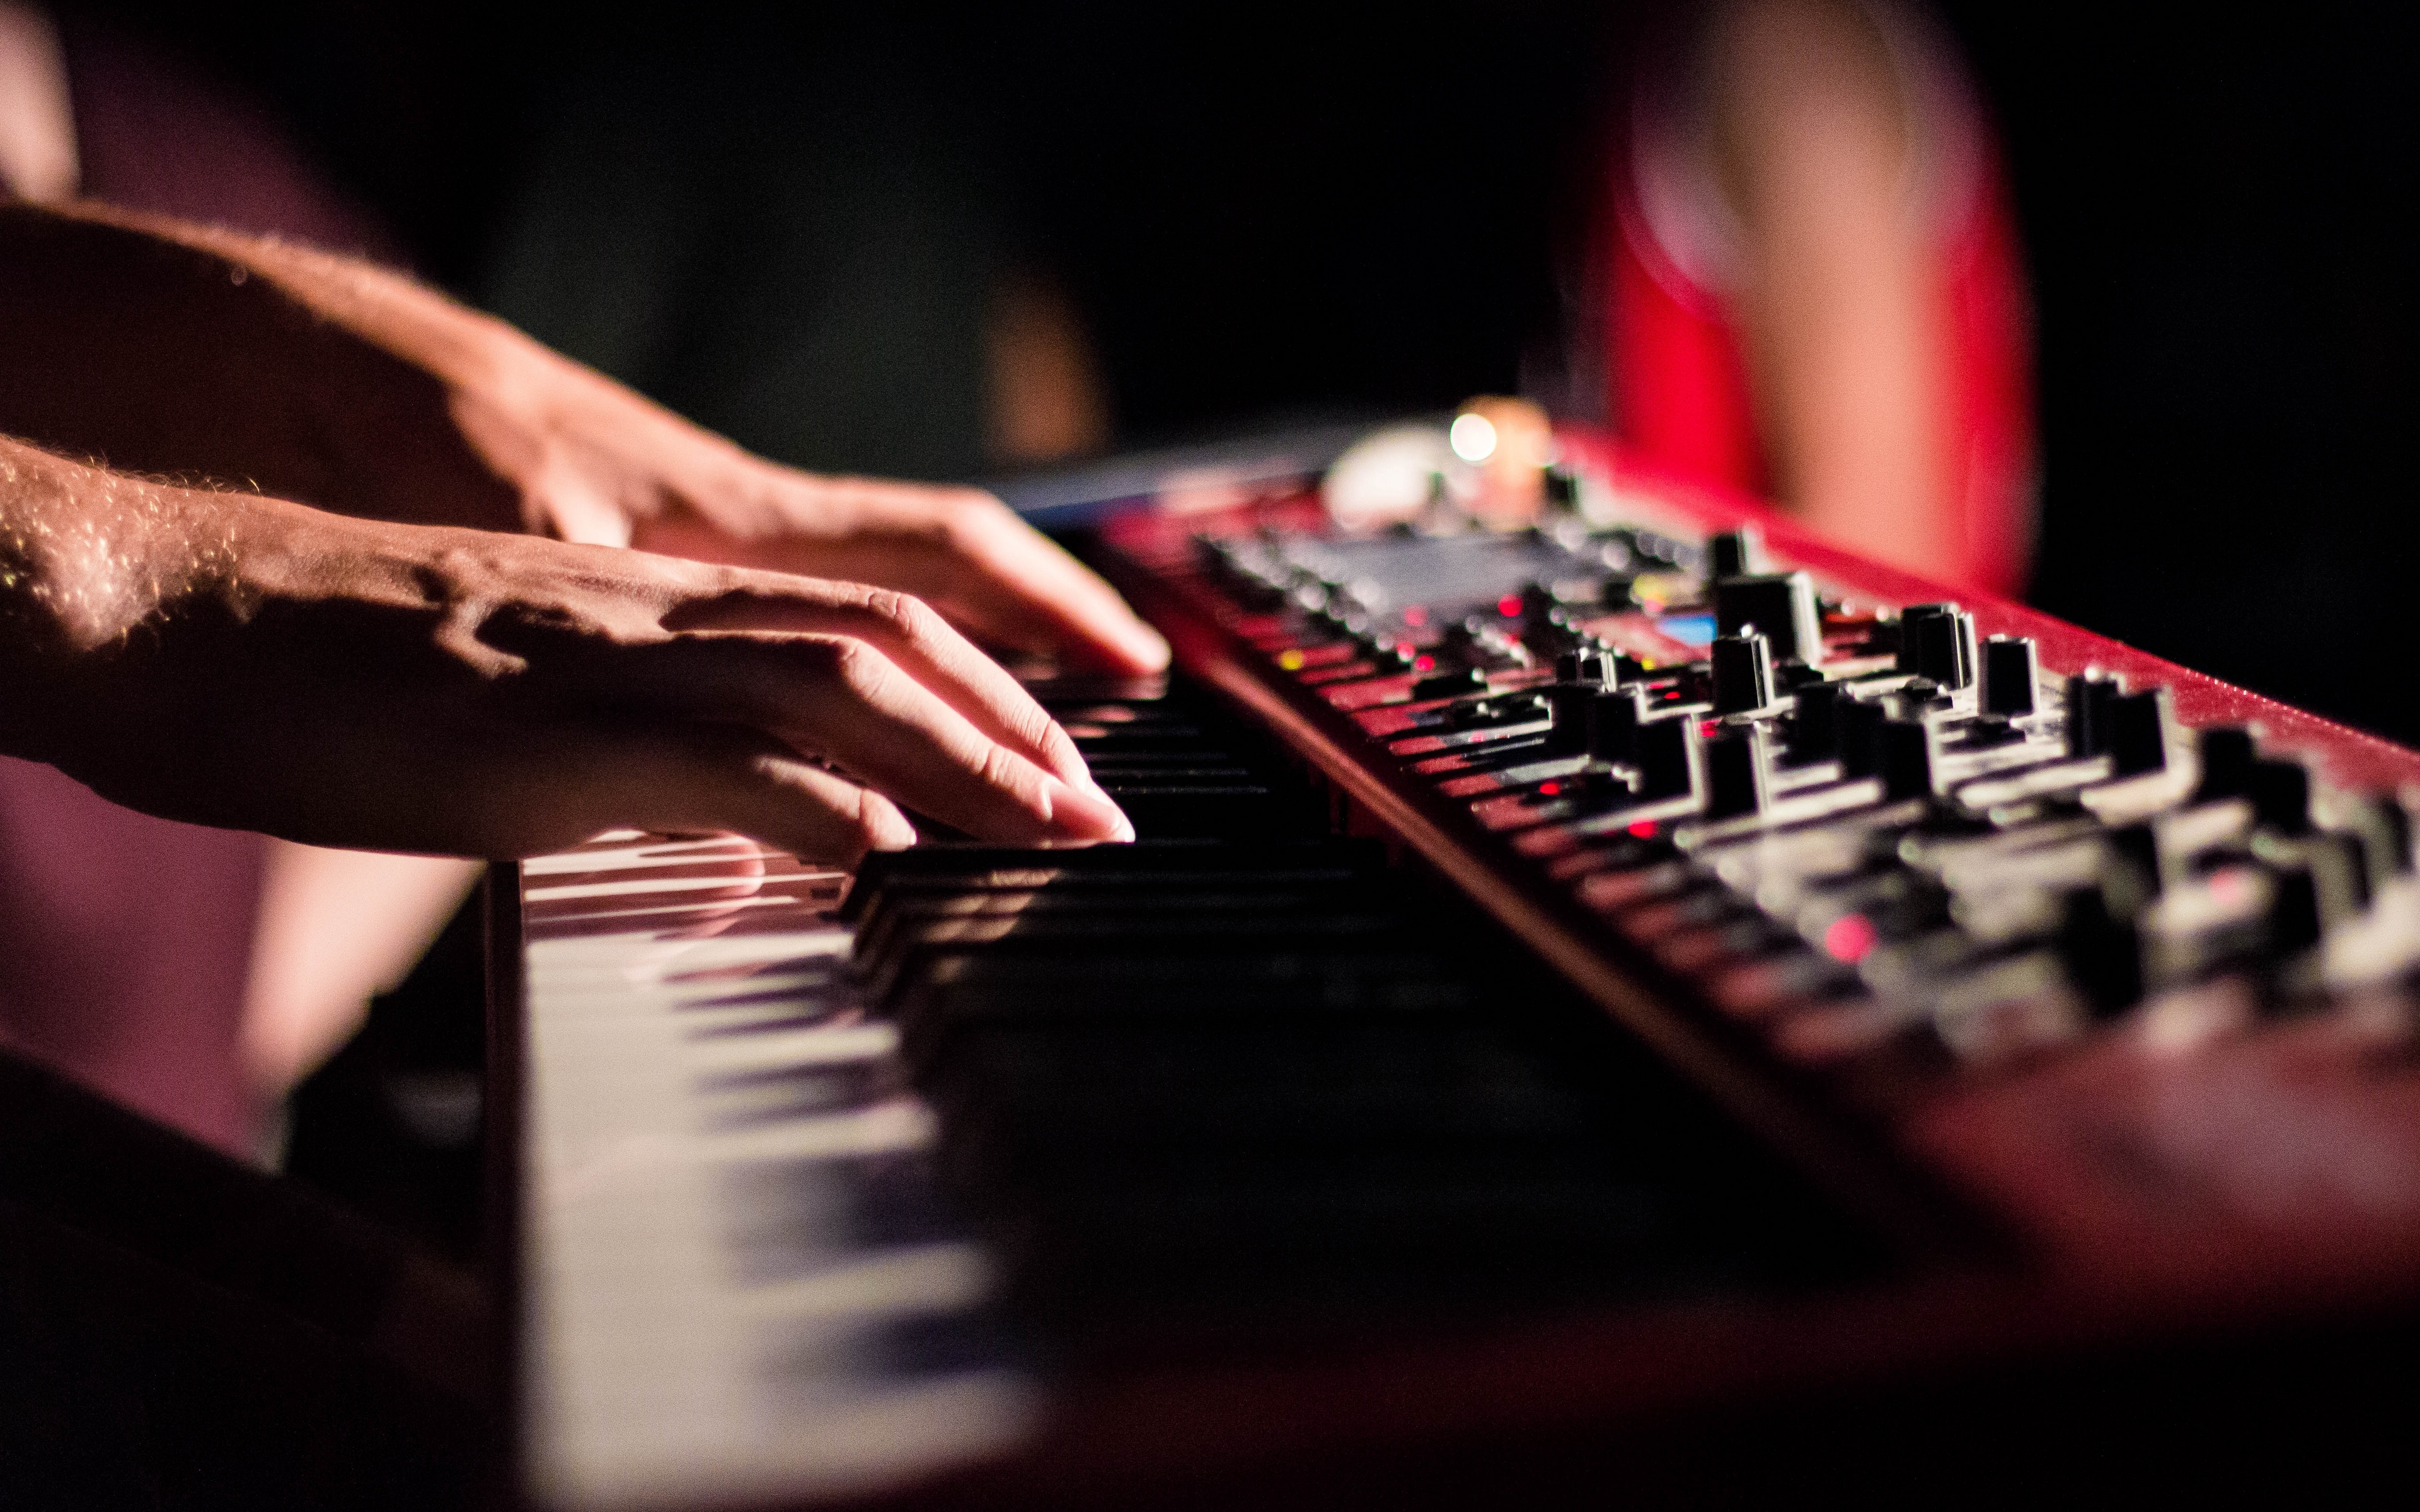 Download wallpaper 3840x2400 synthesizer keys fingers hands 3840x2400